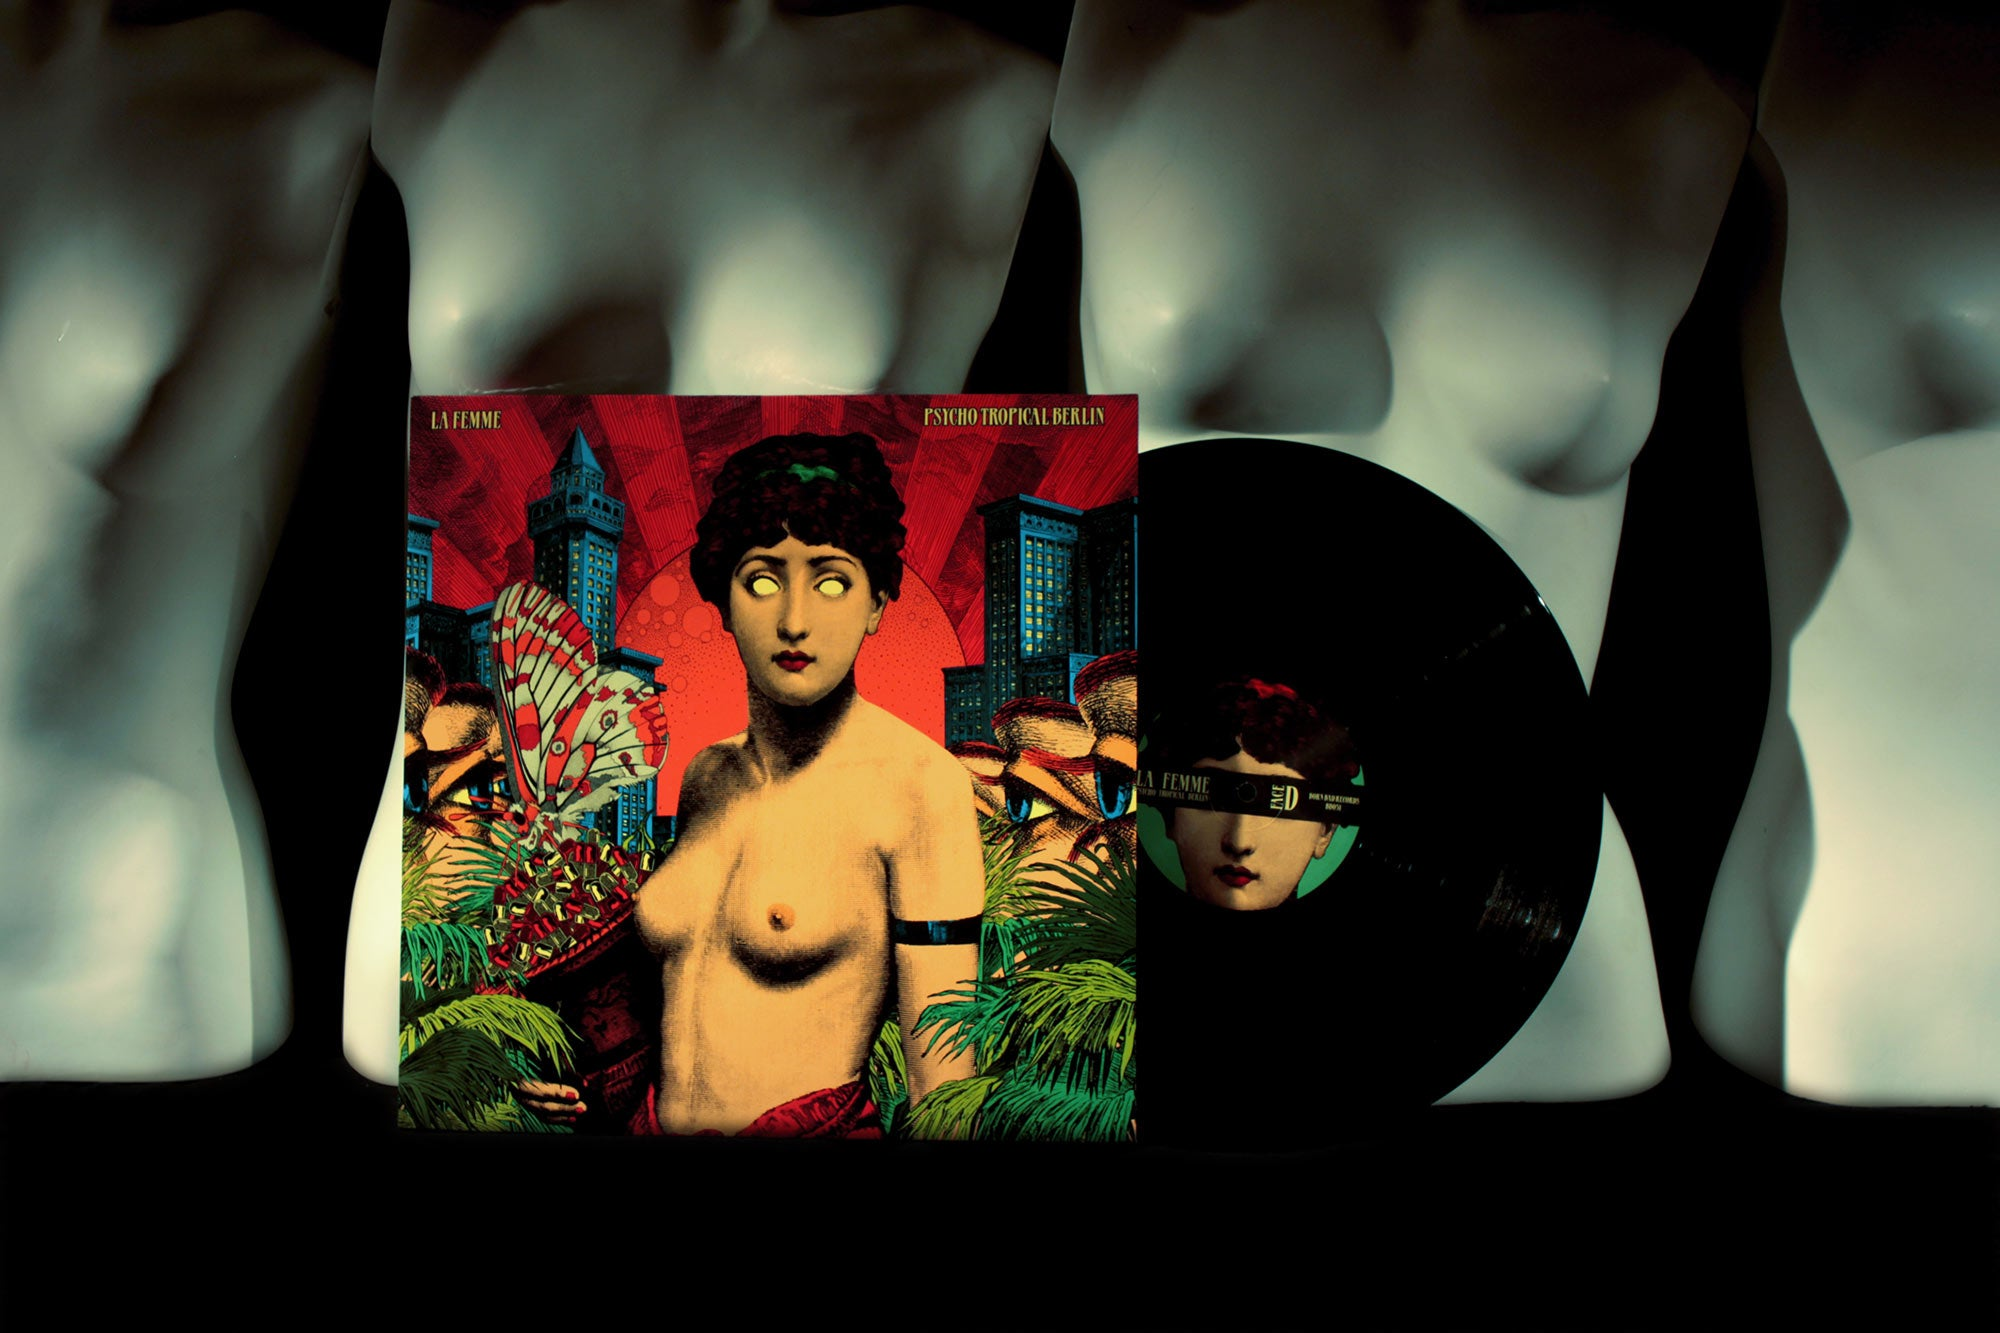 PYSCHO TROPICAL BERLIN - Vinyl / (Double LP)